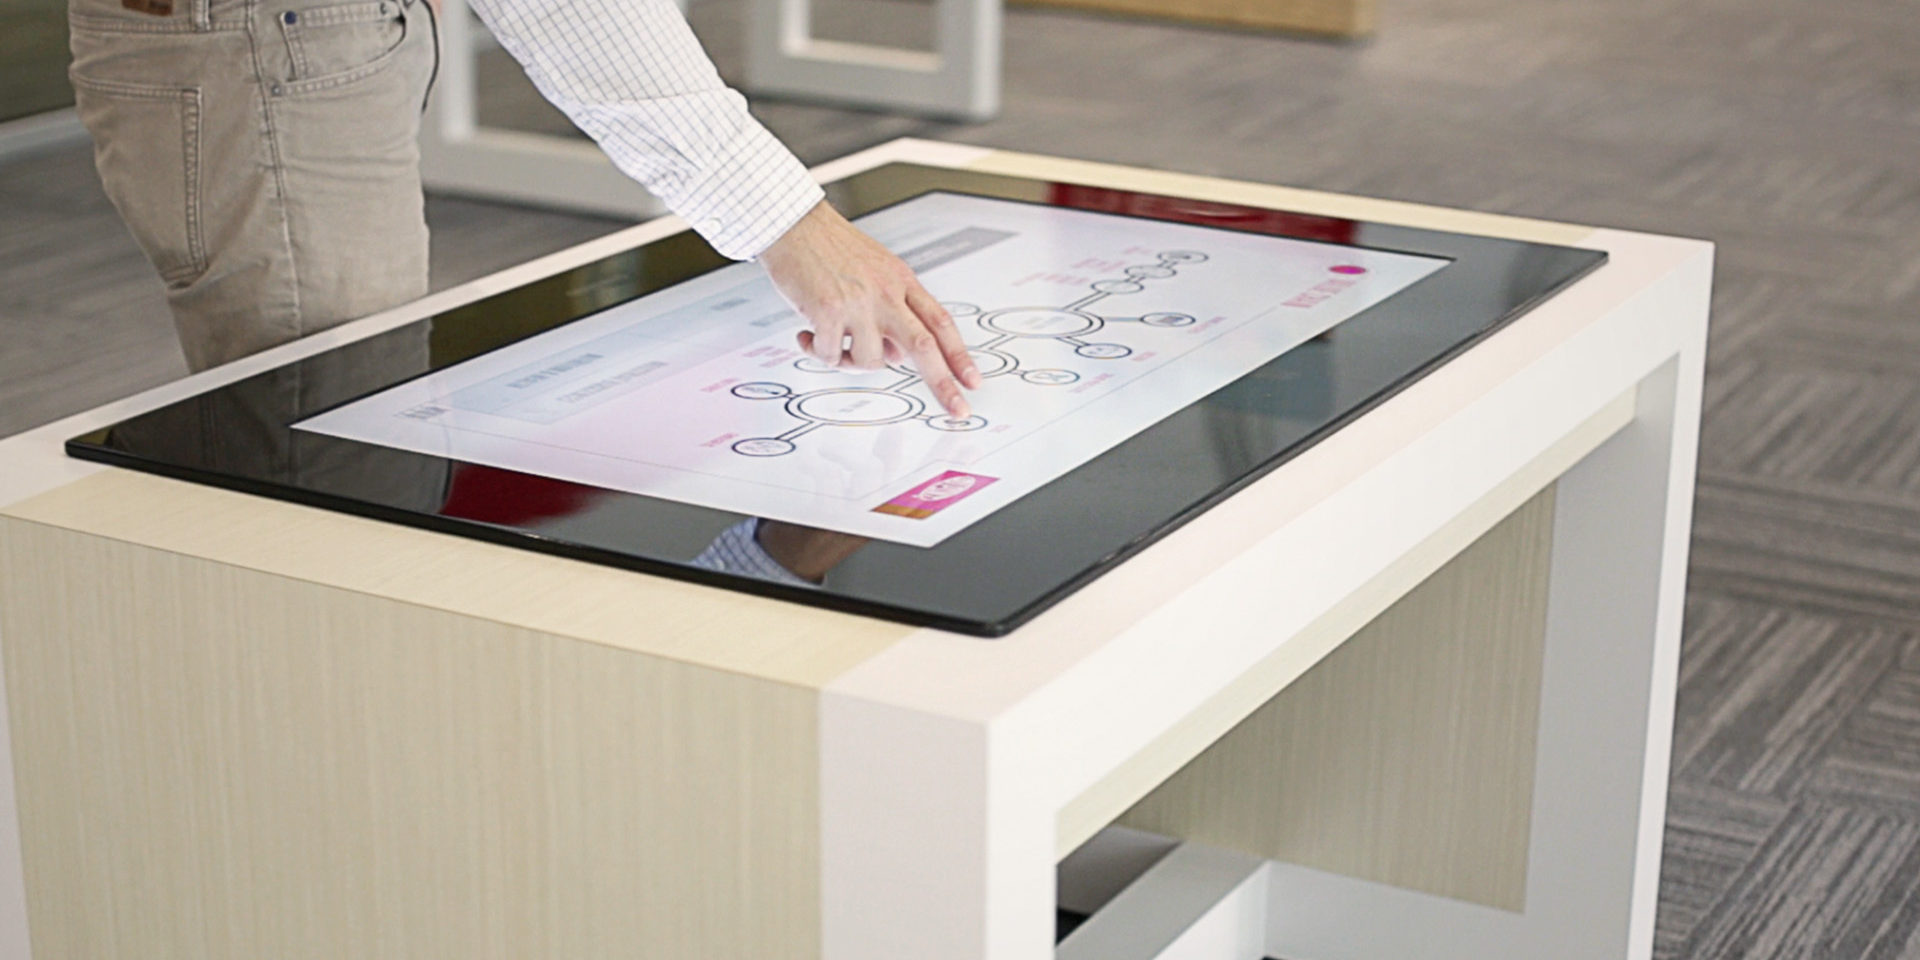 Johnston Innovation Center Tabletop Touchscreen Interactive